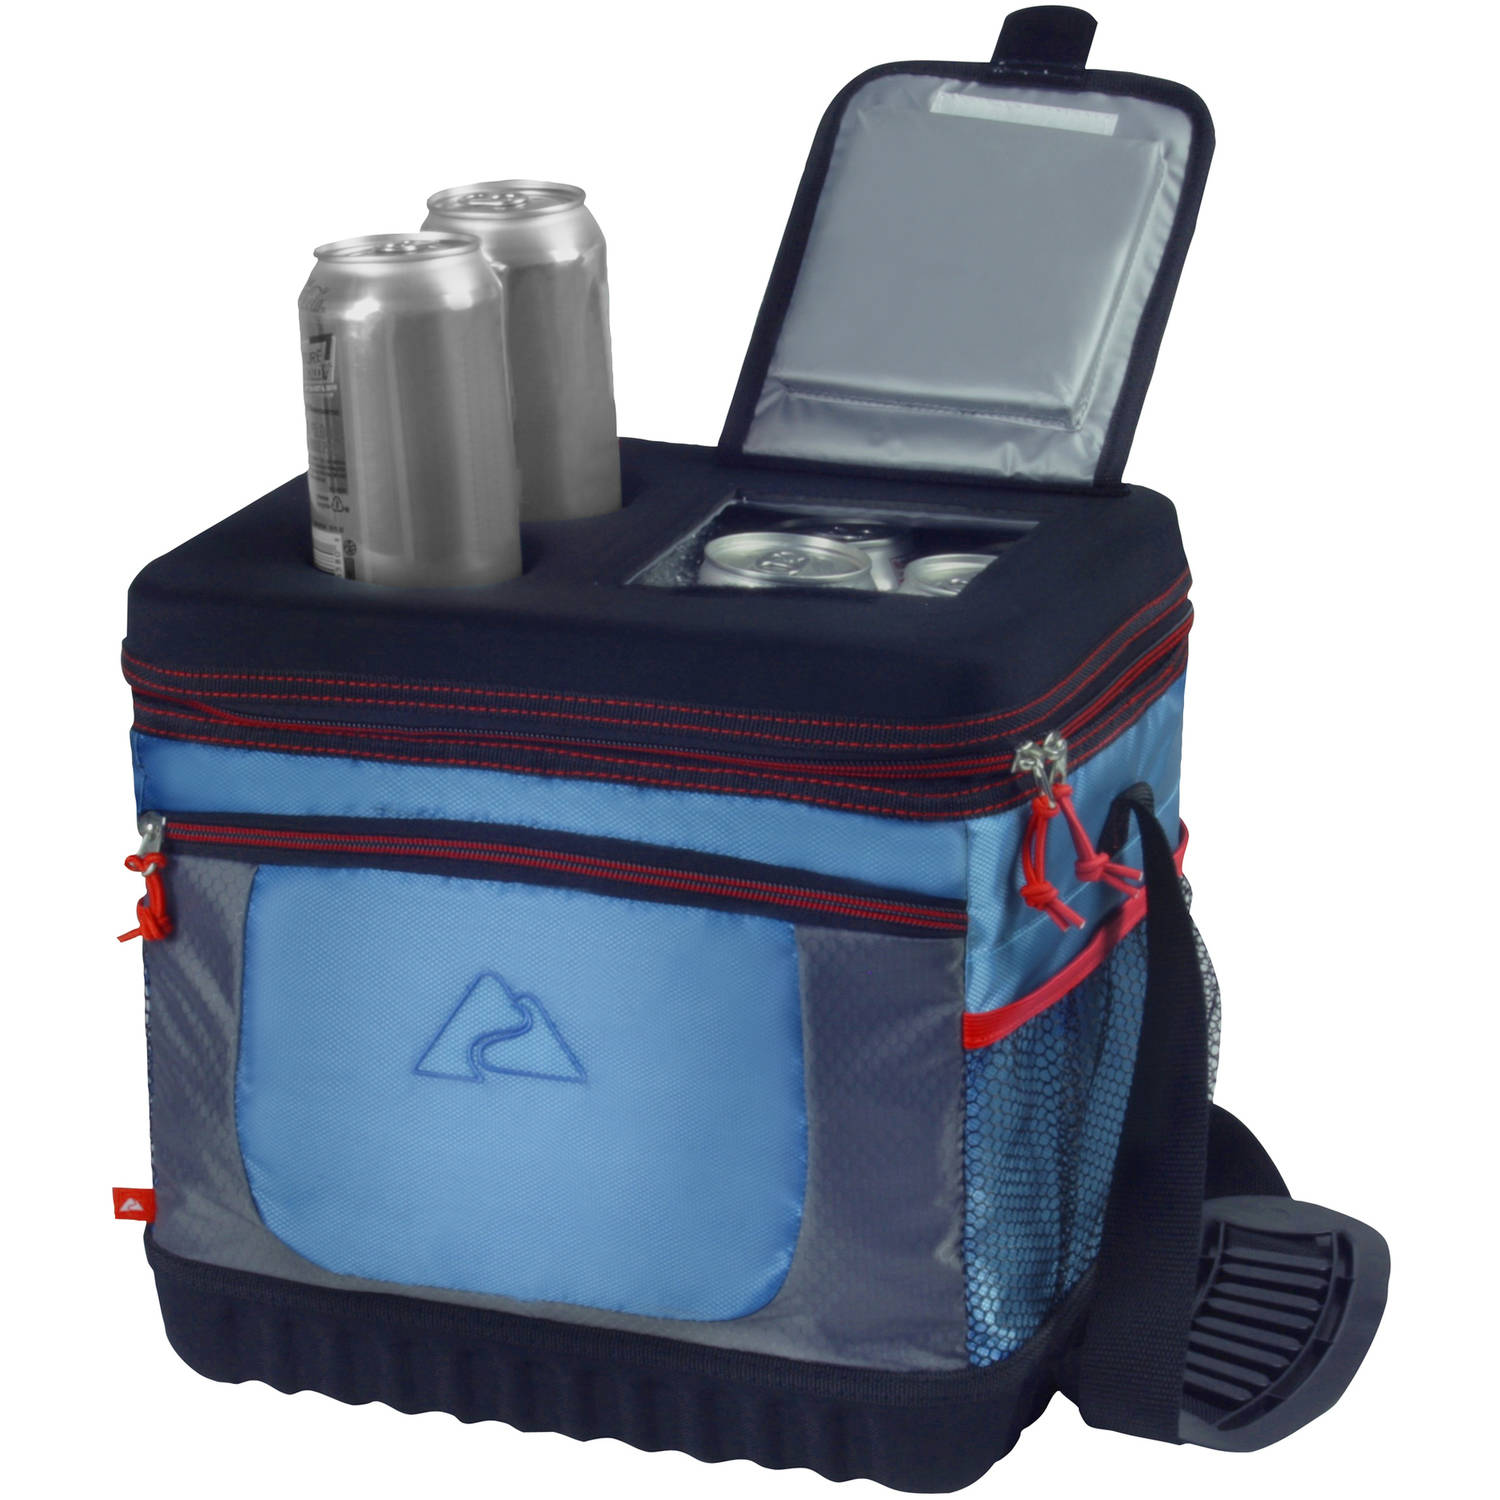 Ozark Trail 18-Can Extreme Cooler, Blue